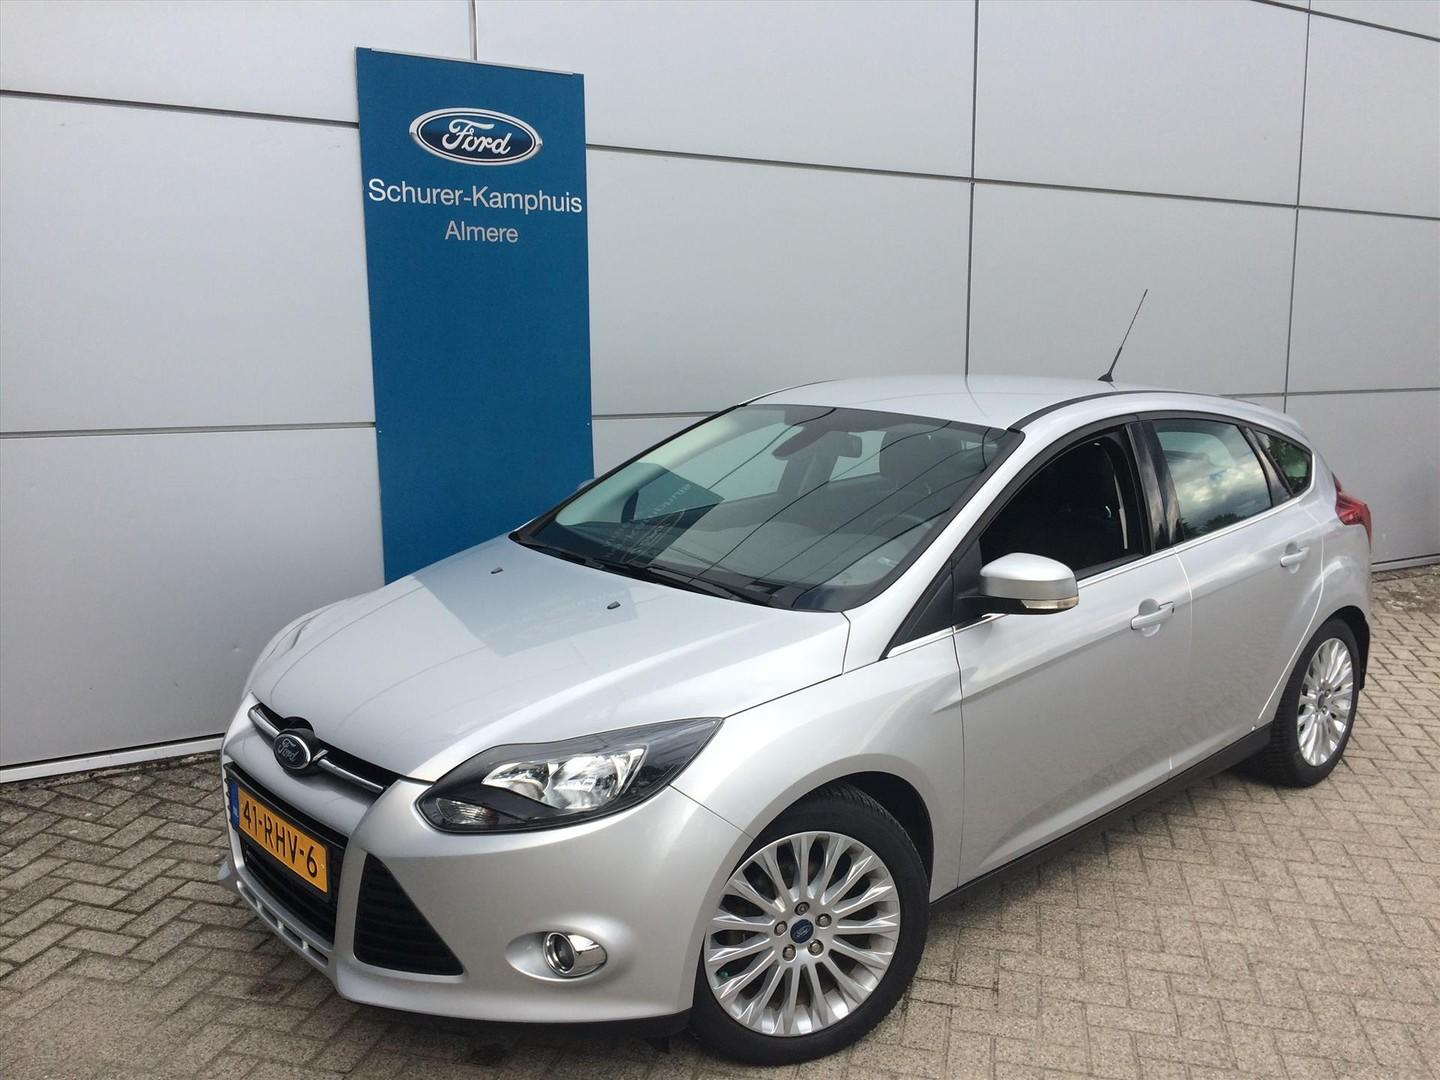 Ford Focus 1.6 125pk 5-deurs first edition